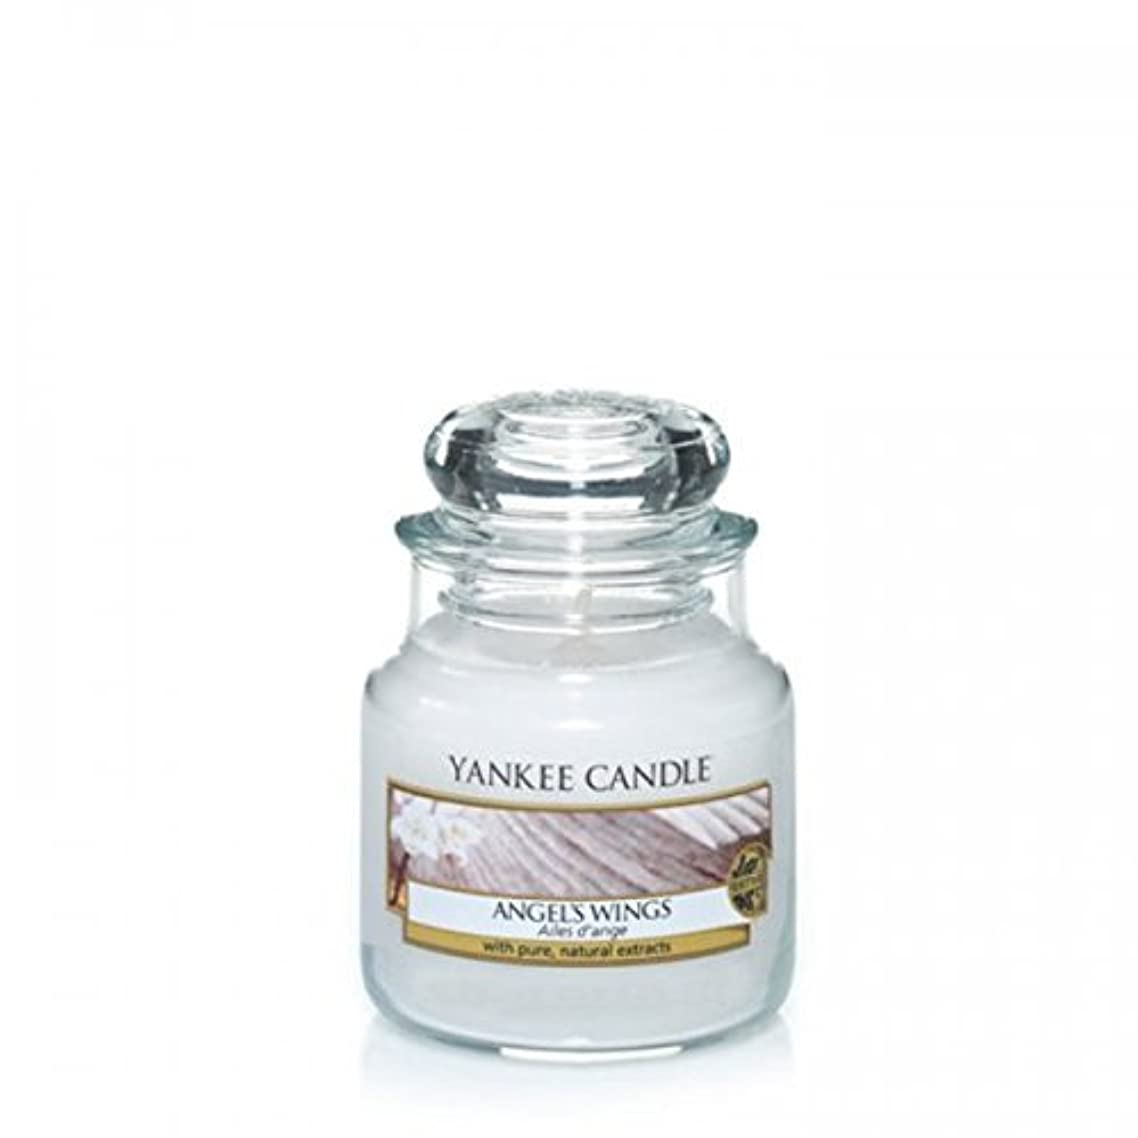 Yankee Candle Angels Wings Jar 3.7Oz by Yankee Candle [並行輸入品]